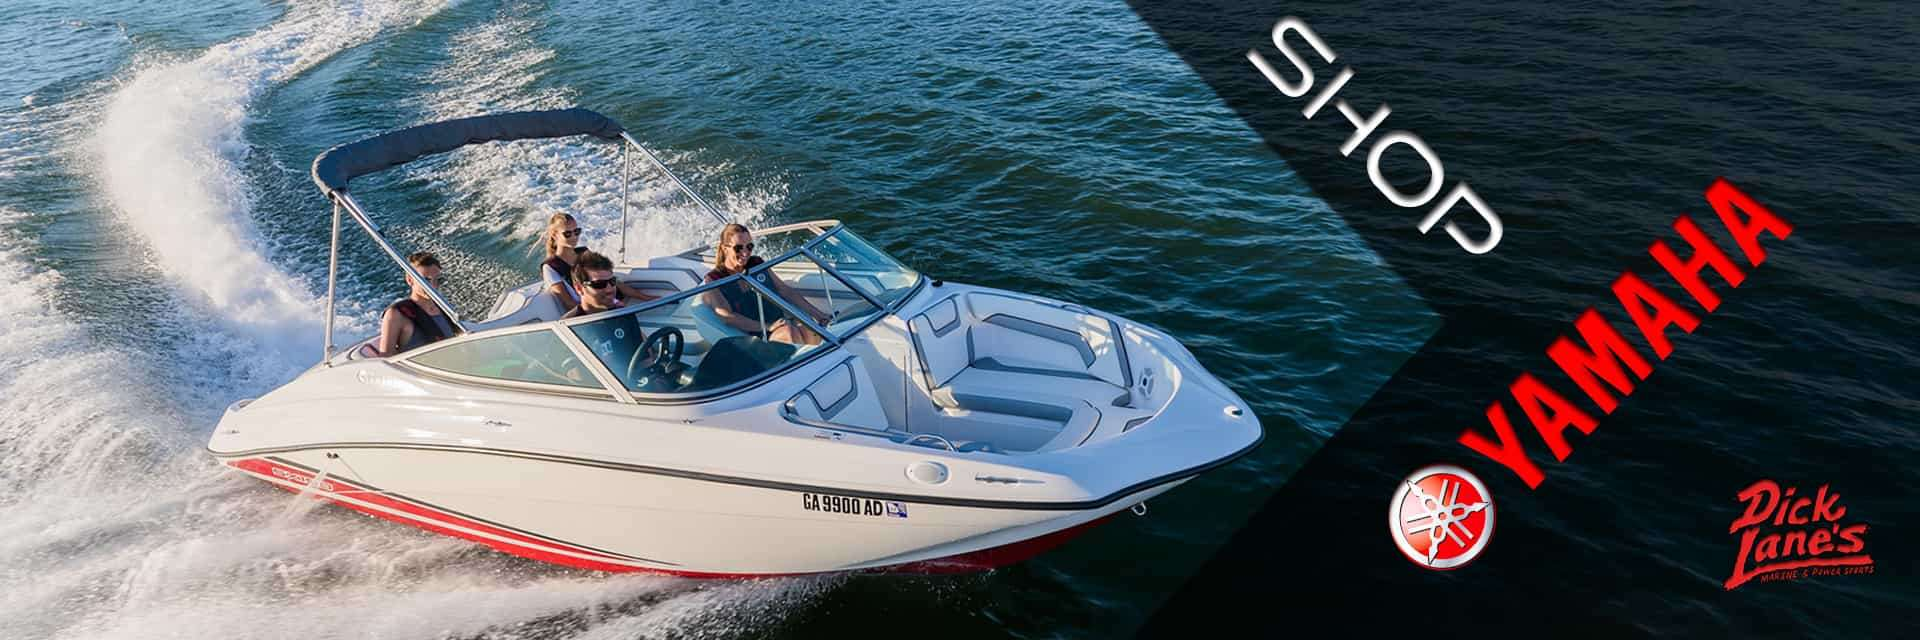 Yamaha Power Boats are sold at Dick Lane's Marine and Powersports | Afton, OK